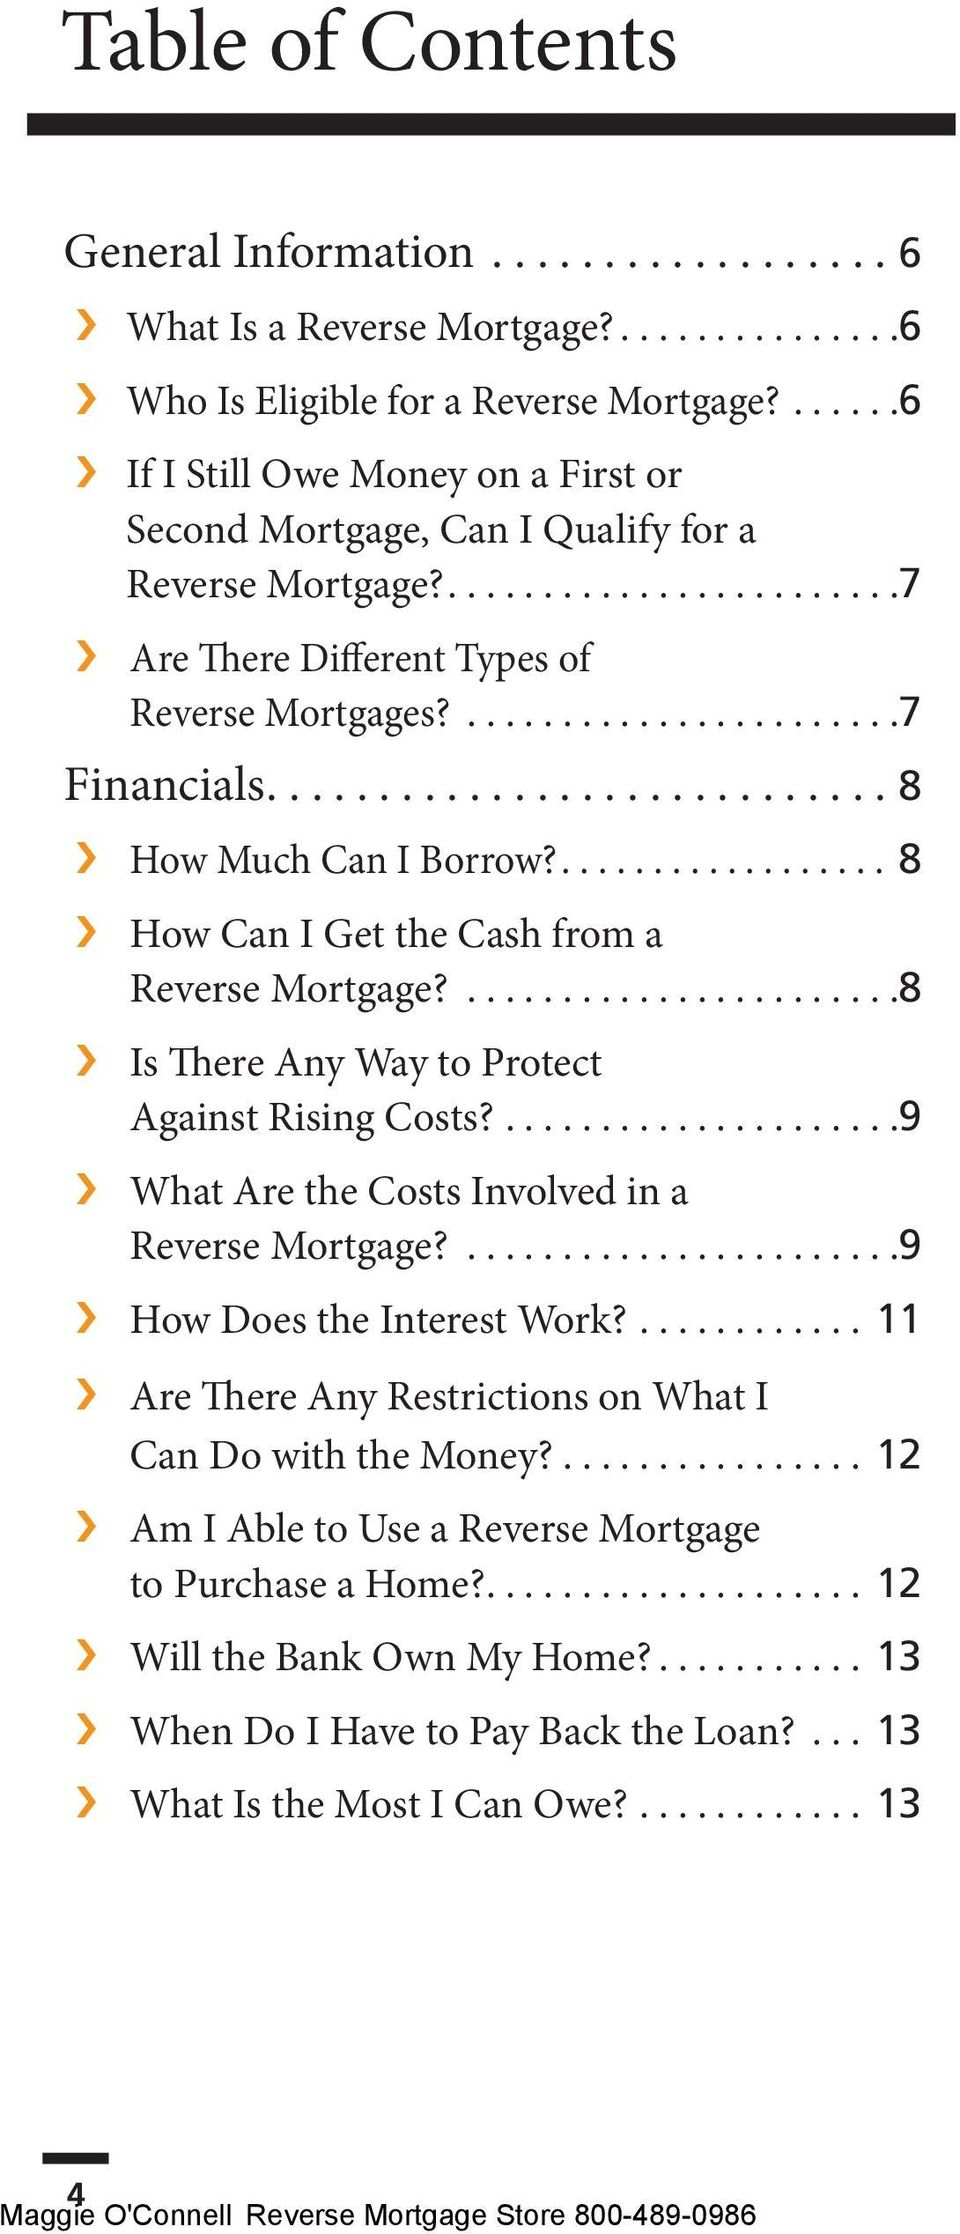 ........................... 8 How Much Can I Borrow?.................. 8 How Can I Get the Cash from a Reverse Mortgage?.......................8 Is There Any Way to Protect Against Rising Costs?